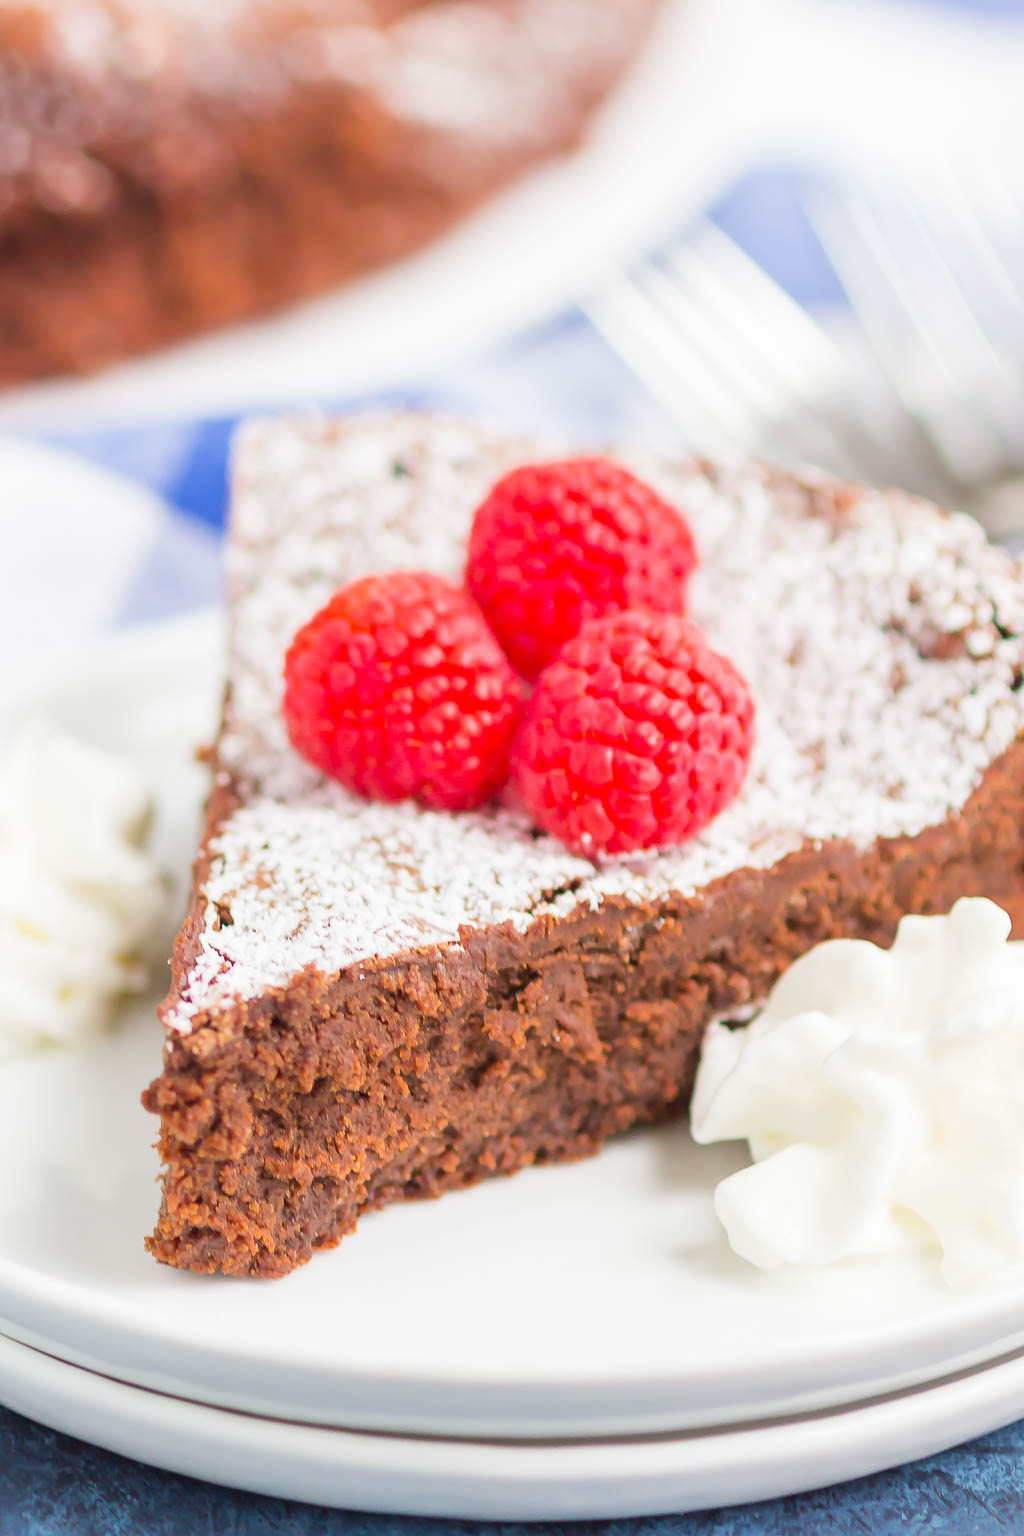 Flourless Chocolate Cake is an easy dessert that's rich, fudgy and decadent. Made with just five ingredients, this smooth and gluten-free cake is will become a favorite all year long! #cake #chocolatecake #flourlesscake #flourlesschocolatecake #chocolatetorte #flourlessdessert #dessert #chocolate dessert